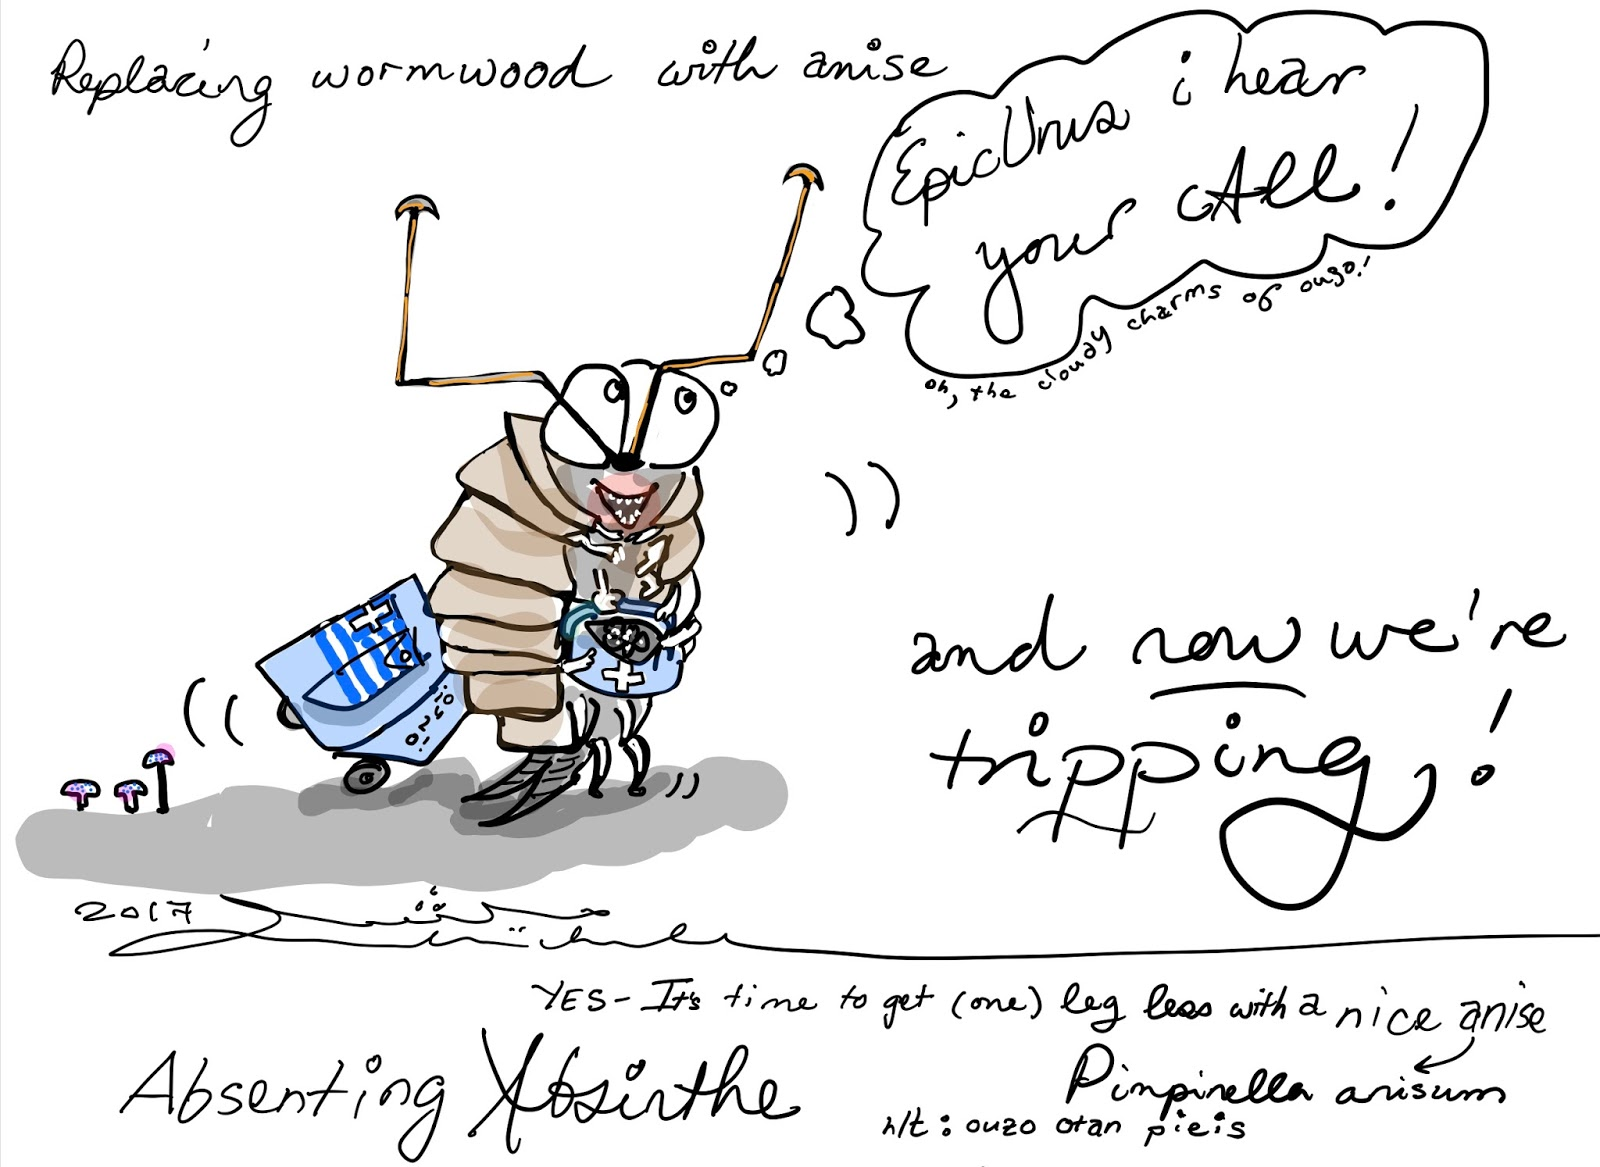 In Absinthe, a cartoon with Dilly, the wood louse